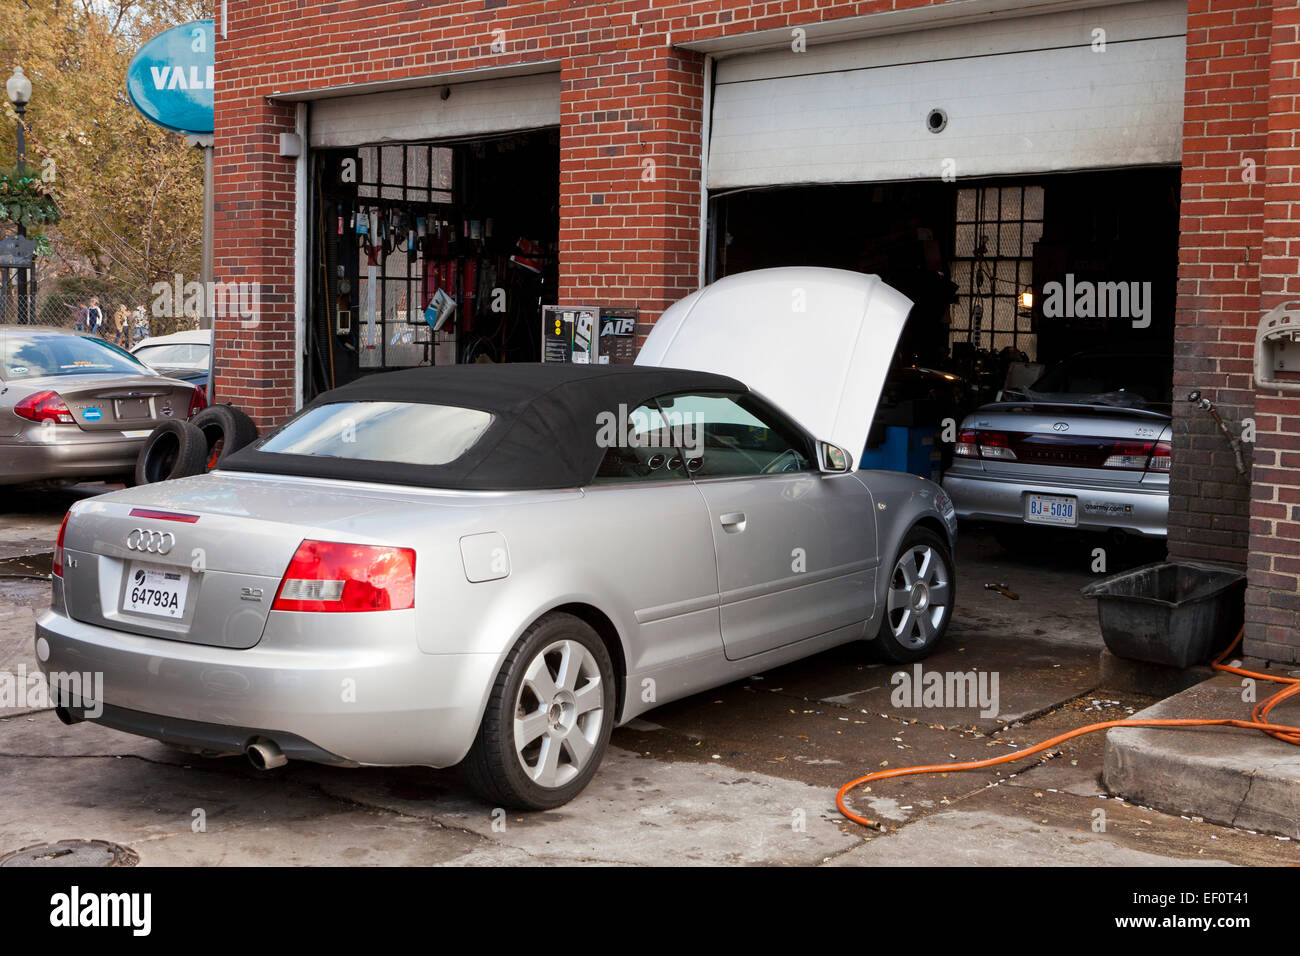 Audi A Parked In Front Of Auto Service Garage USA Stock Photo - Audi car garage